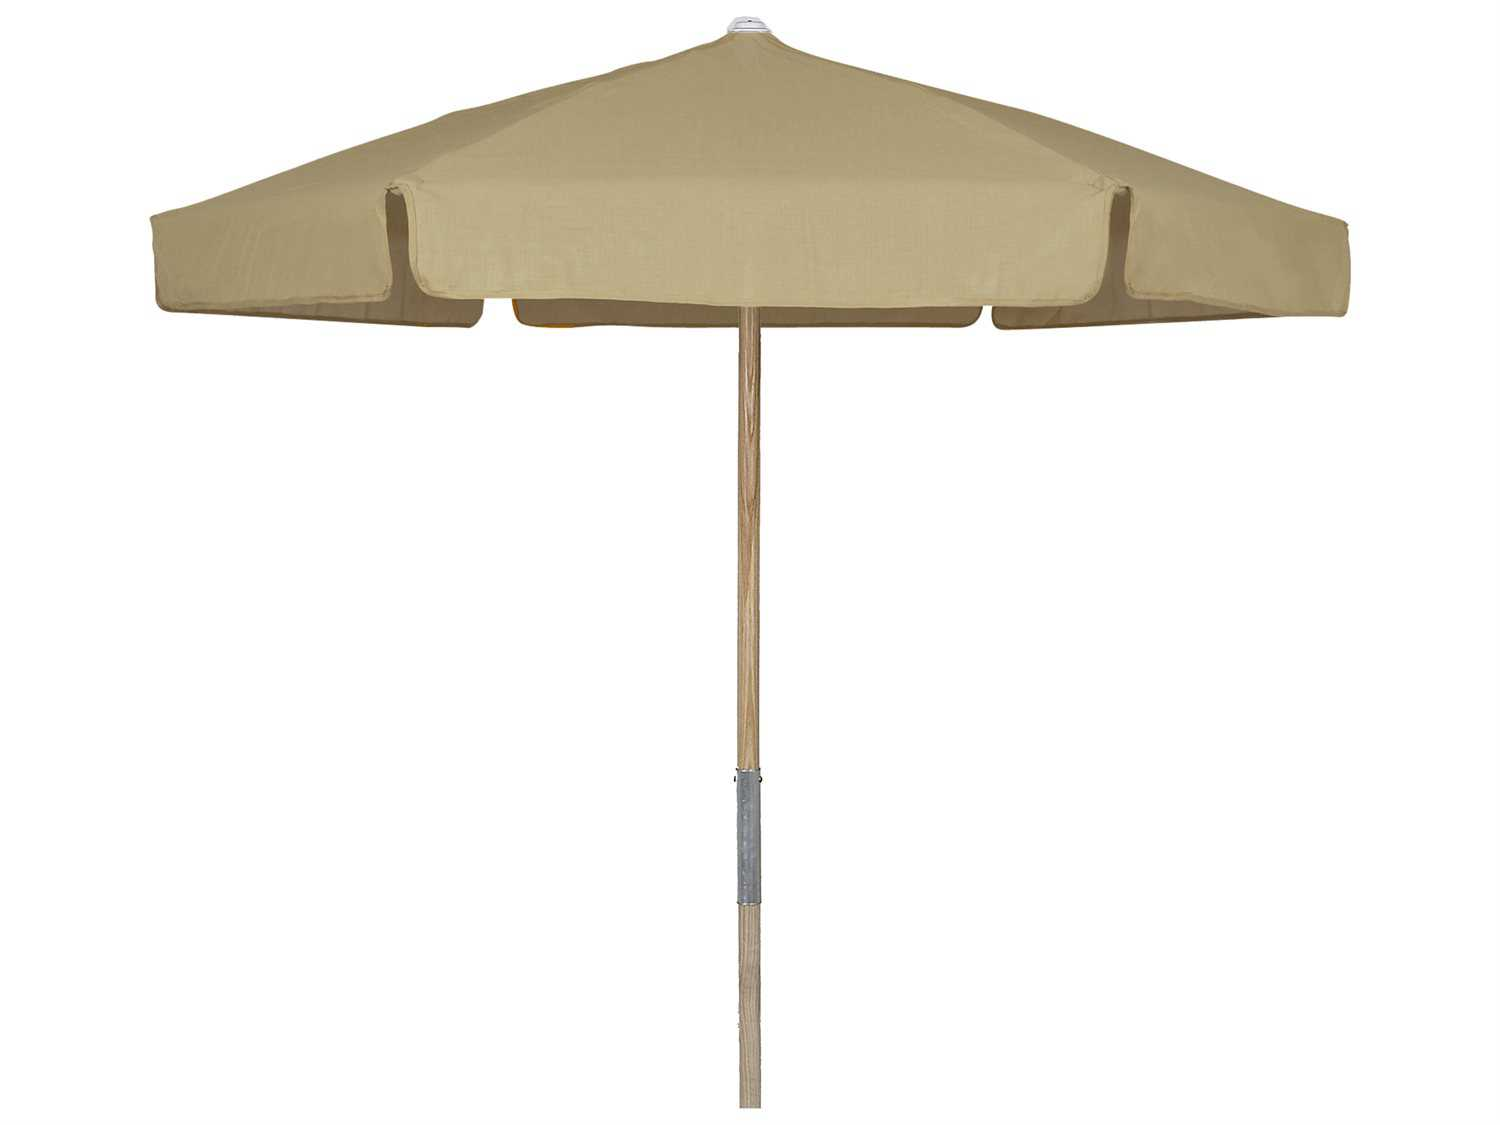 Countertop Umbrella Holder : umbrellas beach quick ship 7 5 foot wide push up lift umbrella ...